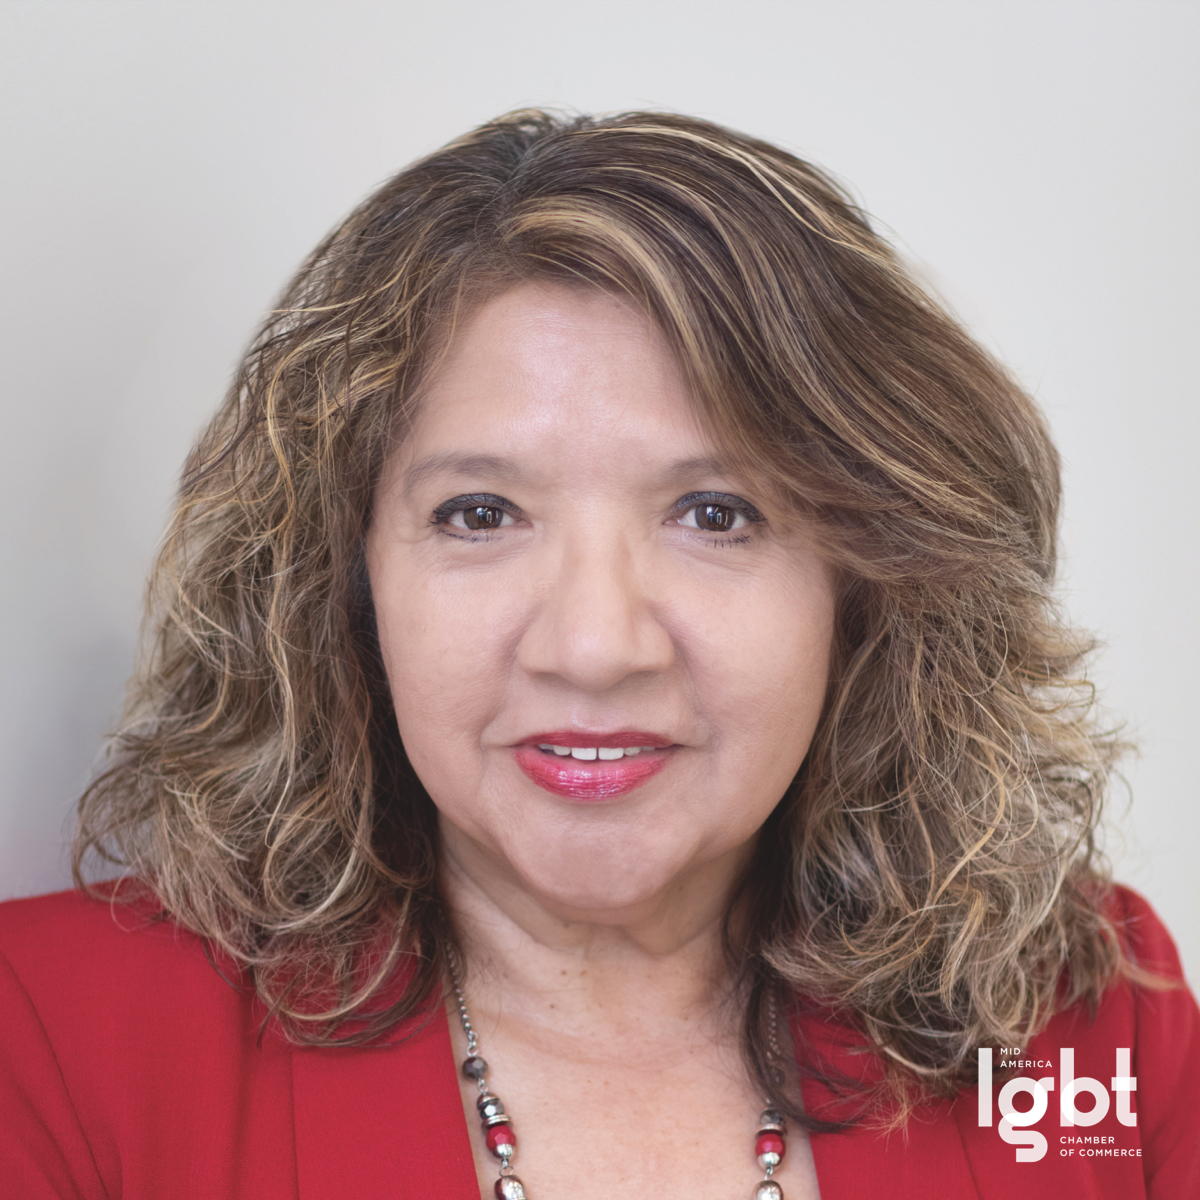 Lolly Cerda <br/> Member at Large <br/> She/Her/Hers